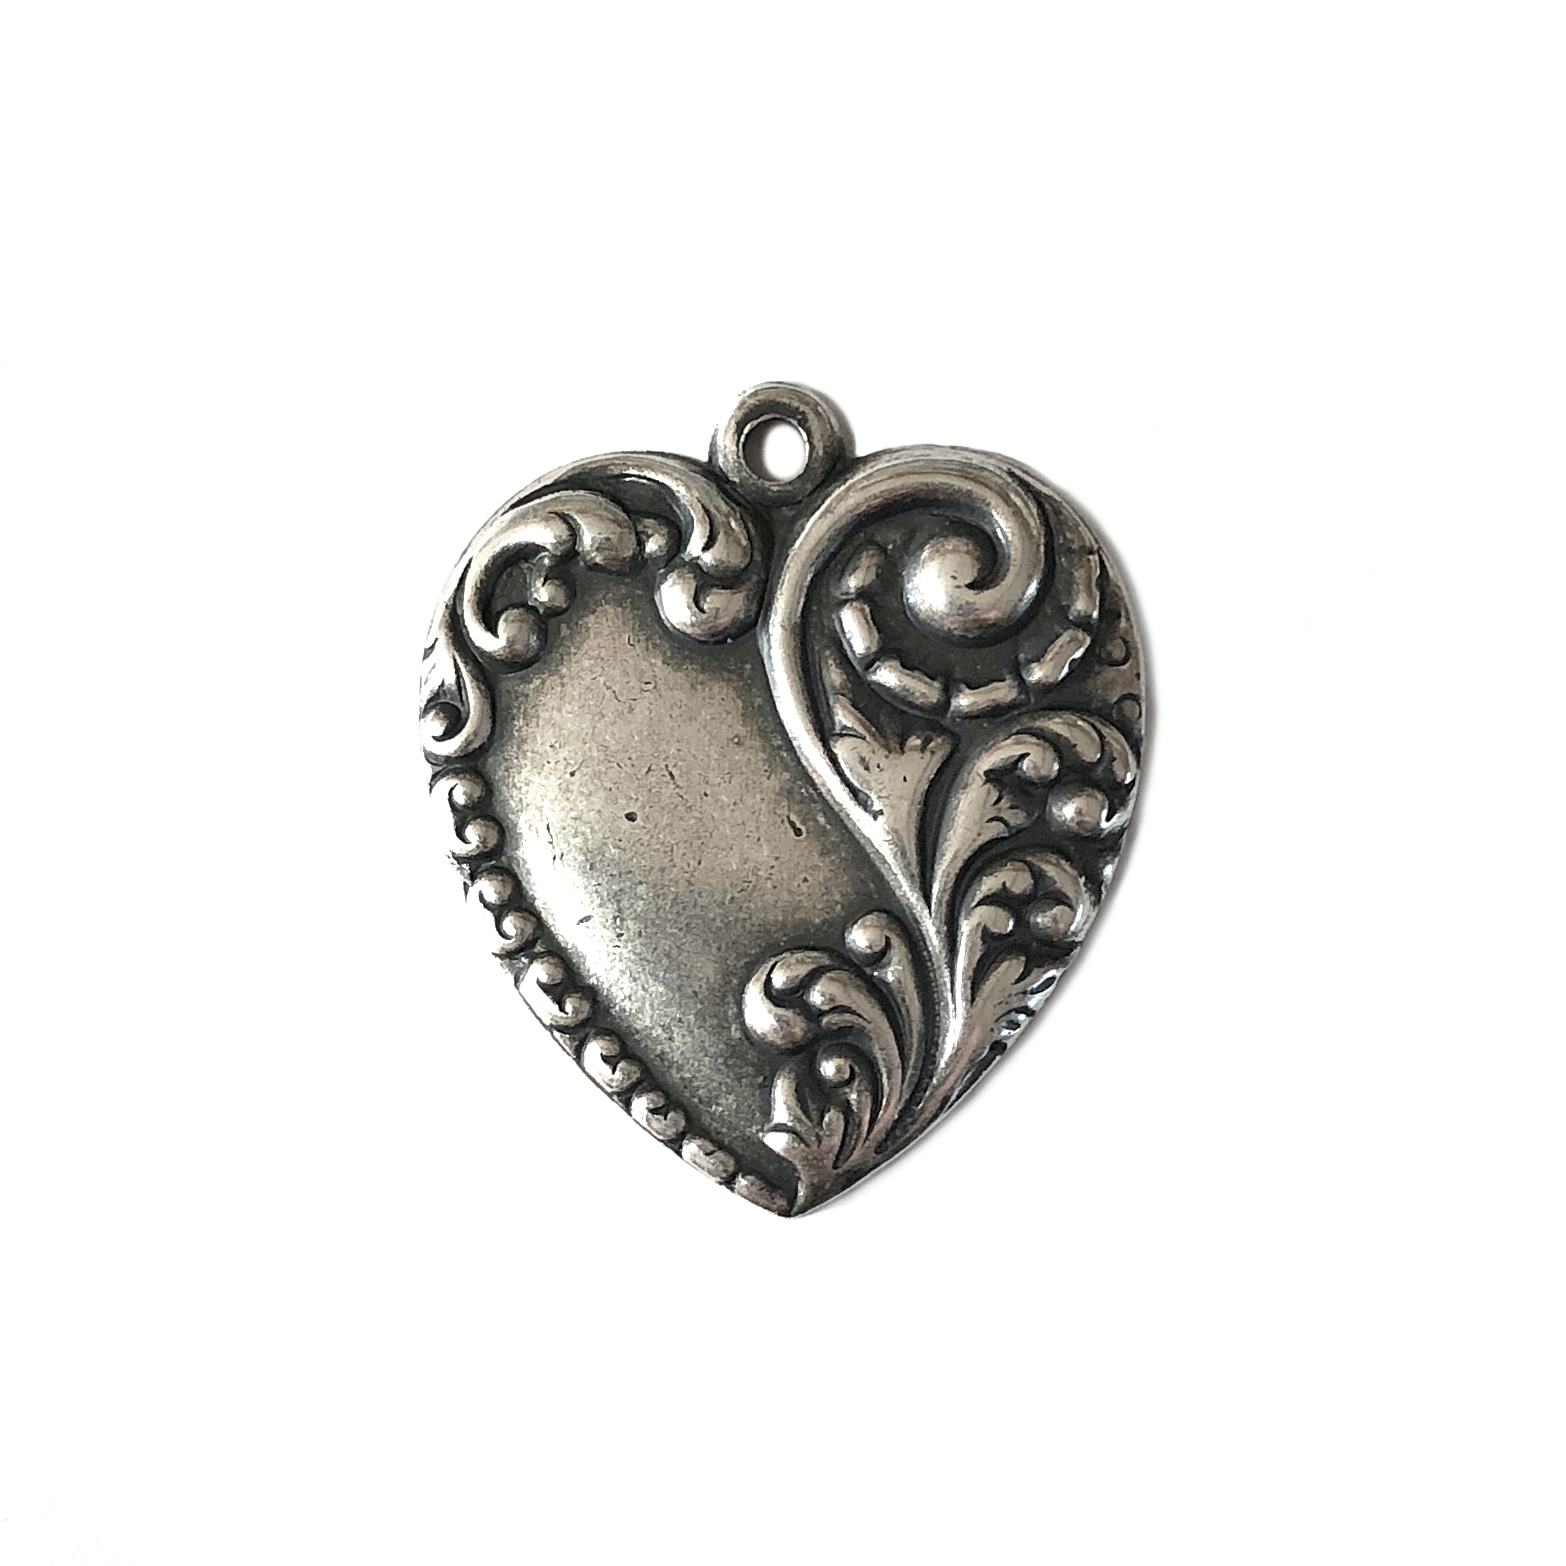 elegant floral heart pendant, silverplate, silverware, pendant, heart charm, heart, floral, floral heart, 28x24mm, victorian, antique silver, US made, nickel free, B'sue Boutiques, jewelry making, jewelry supplies, jewelry findings, vintage supplies,01023